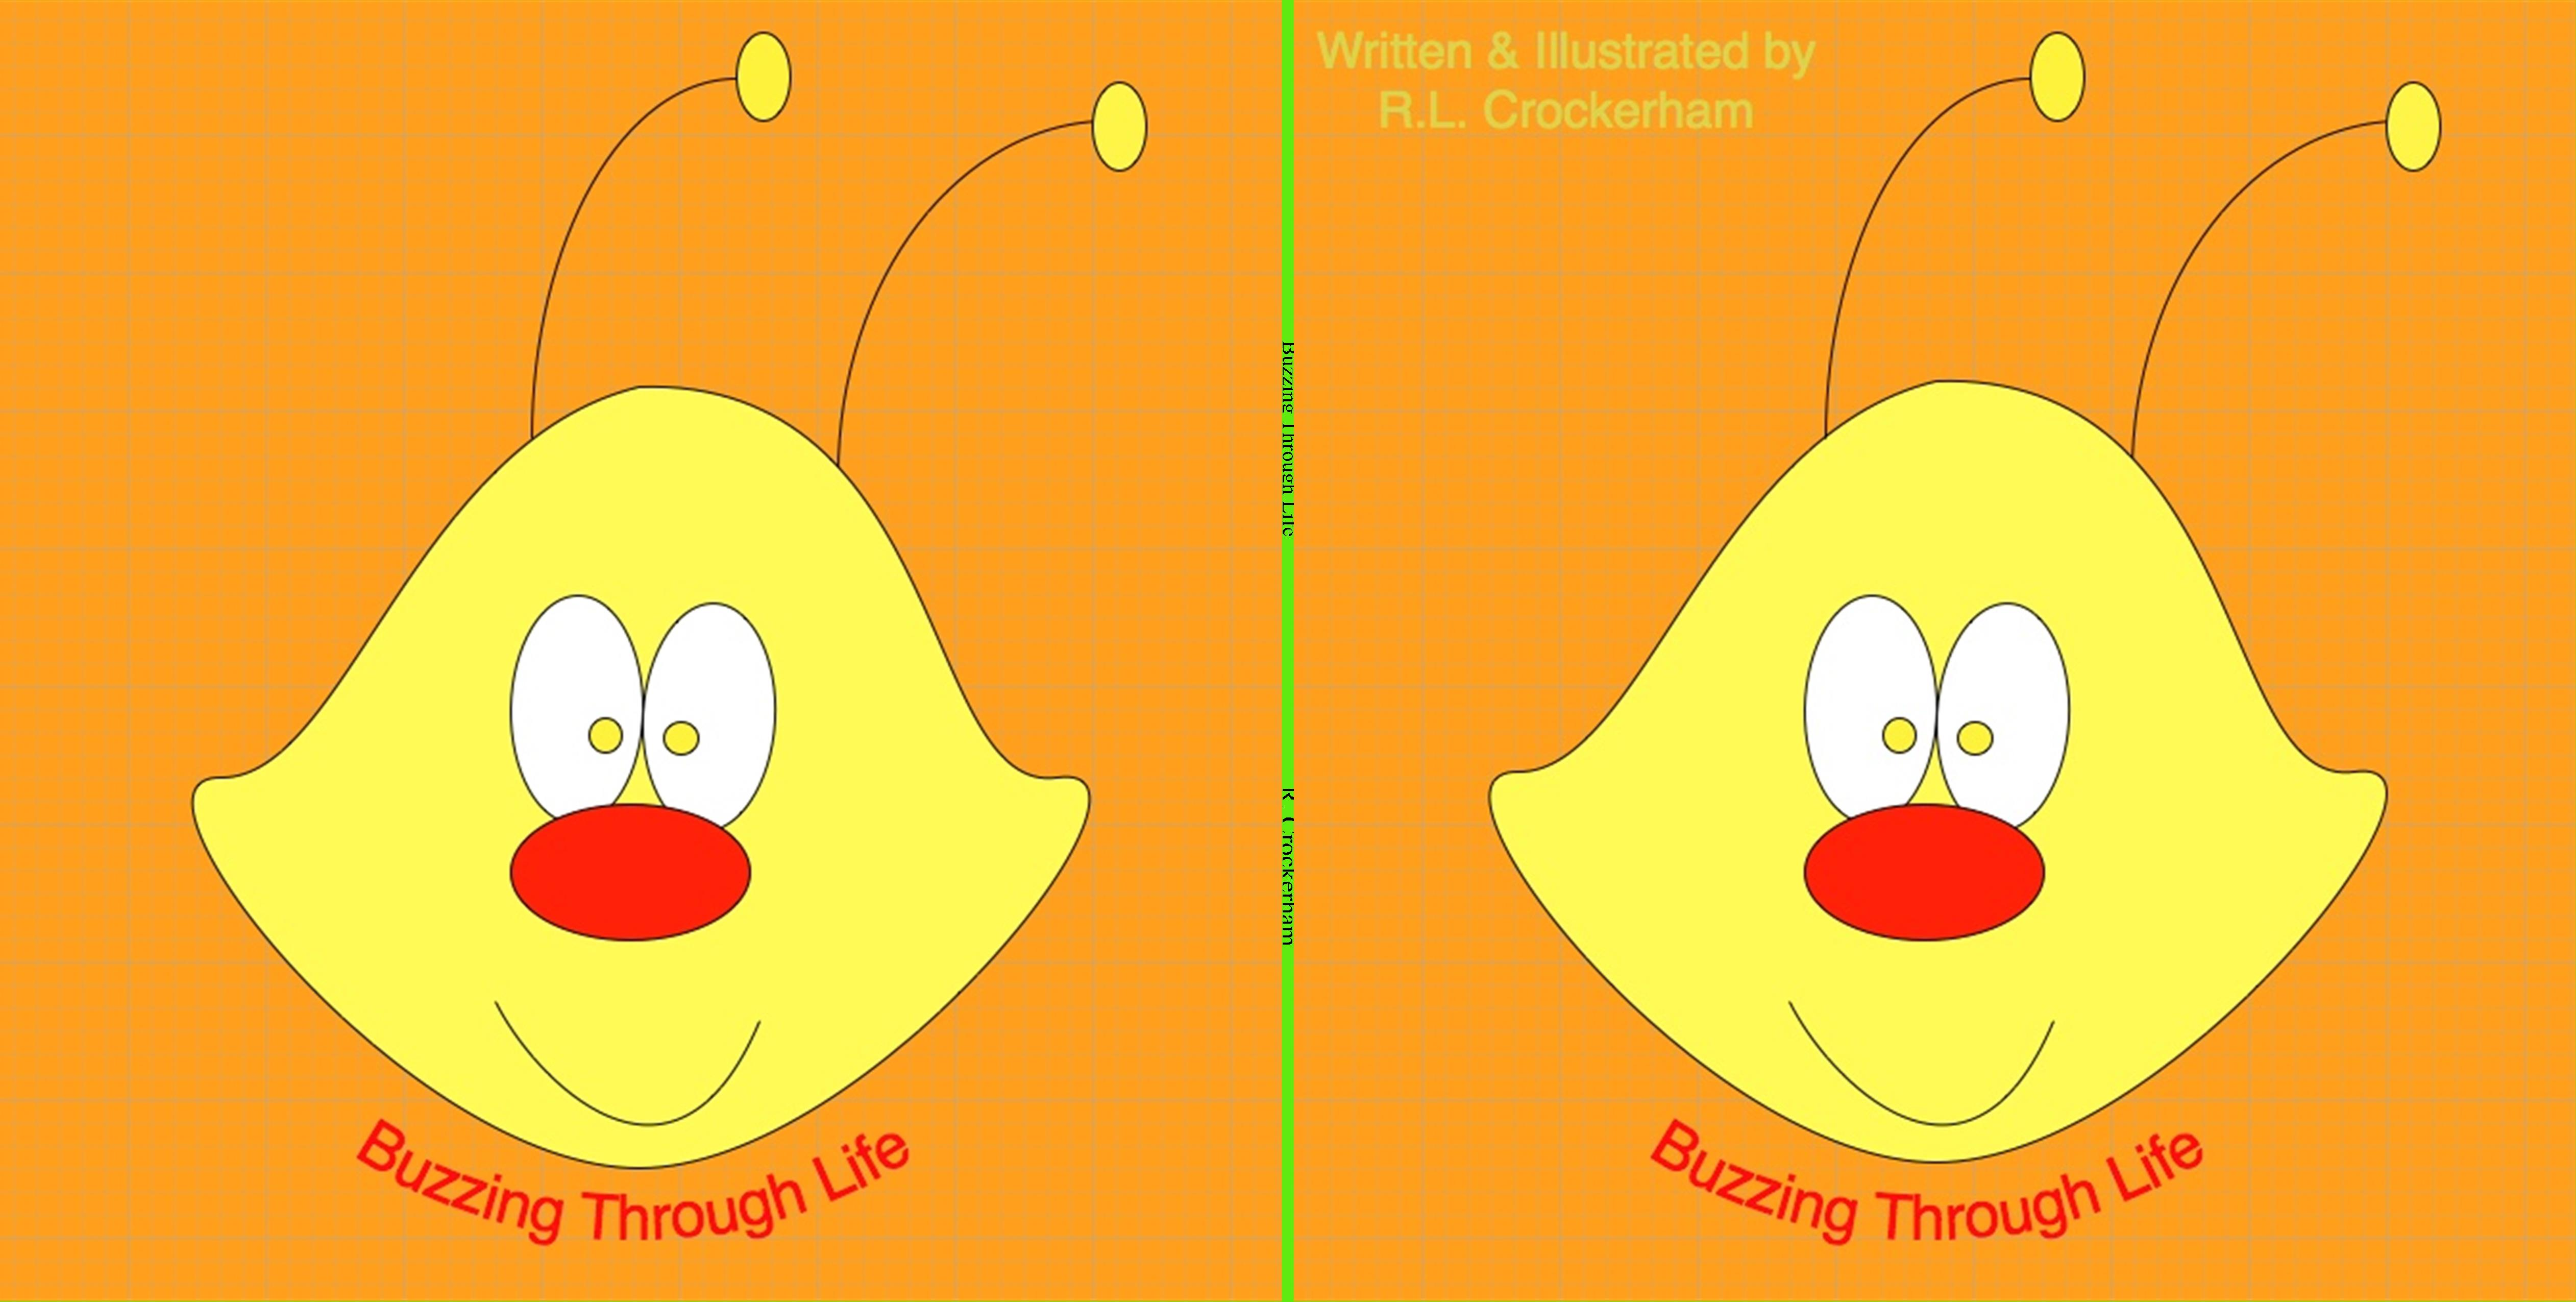 Buzzing Through Life cover image